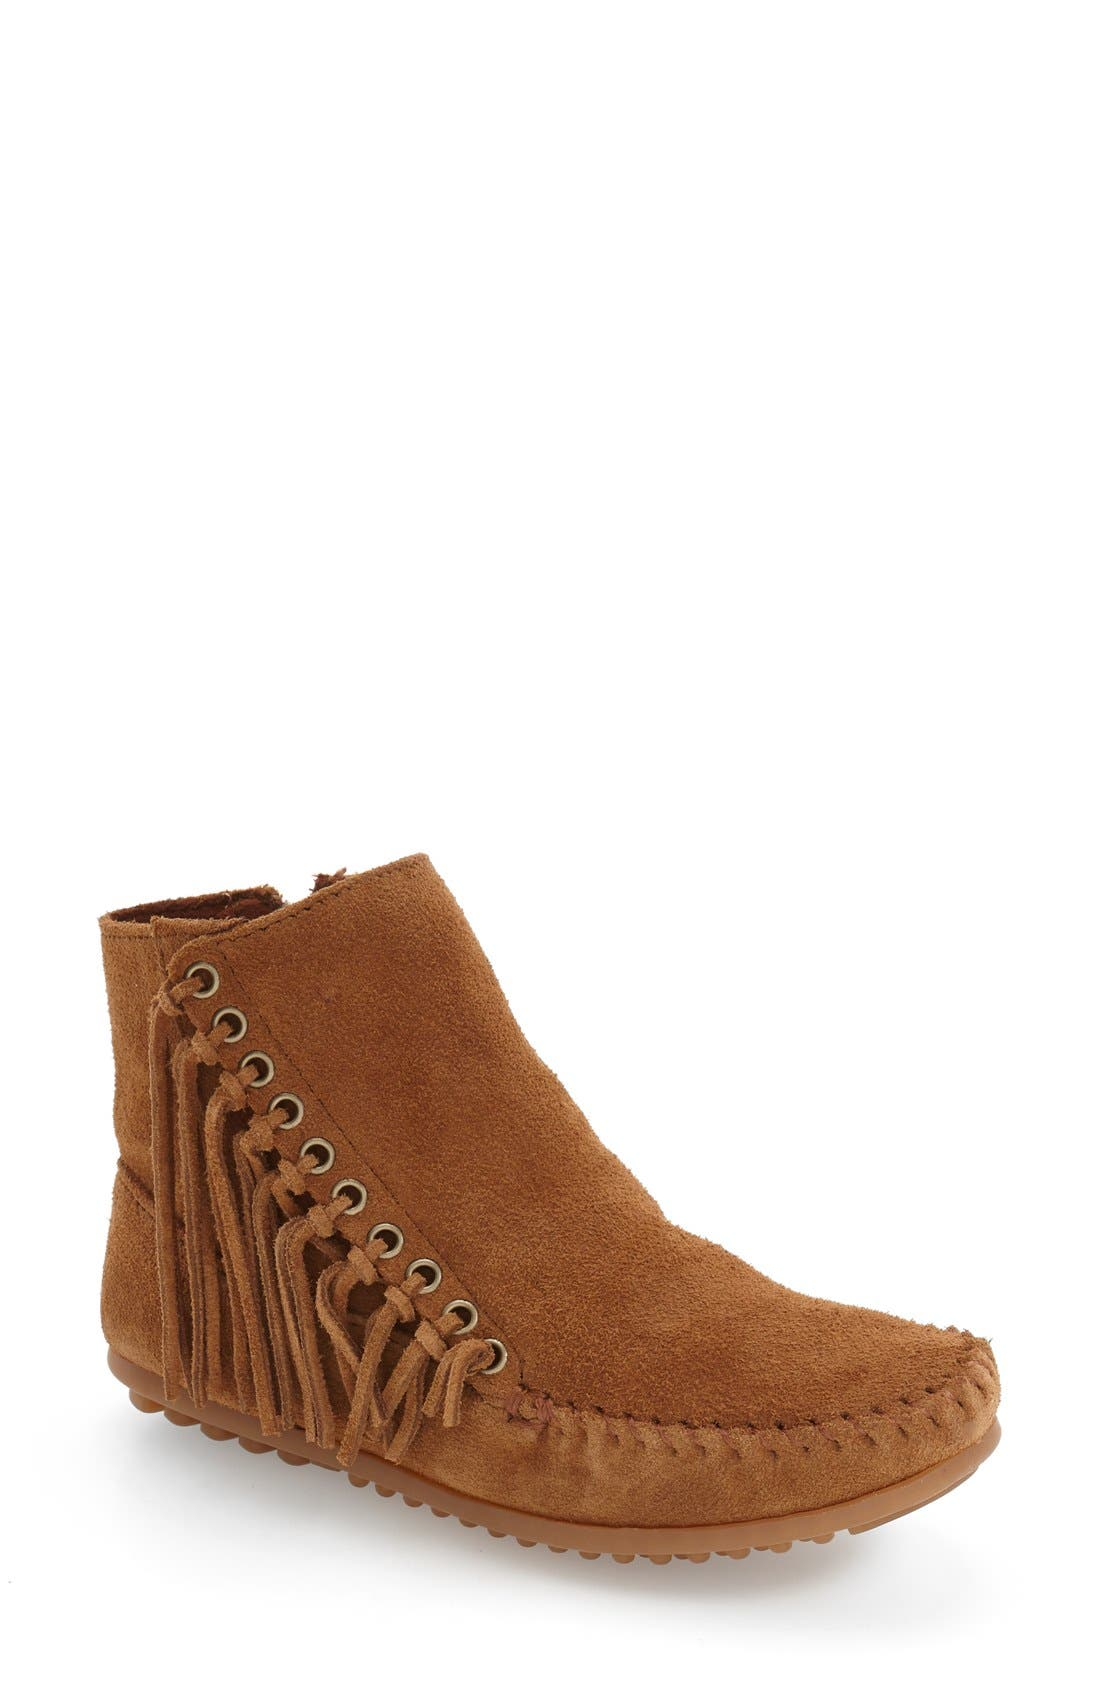 'Willow' Fringe Bootie,                         Main,                         color, 211